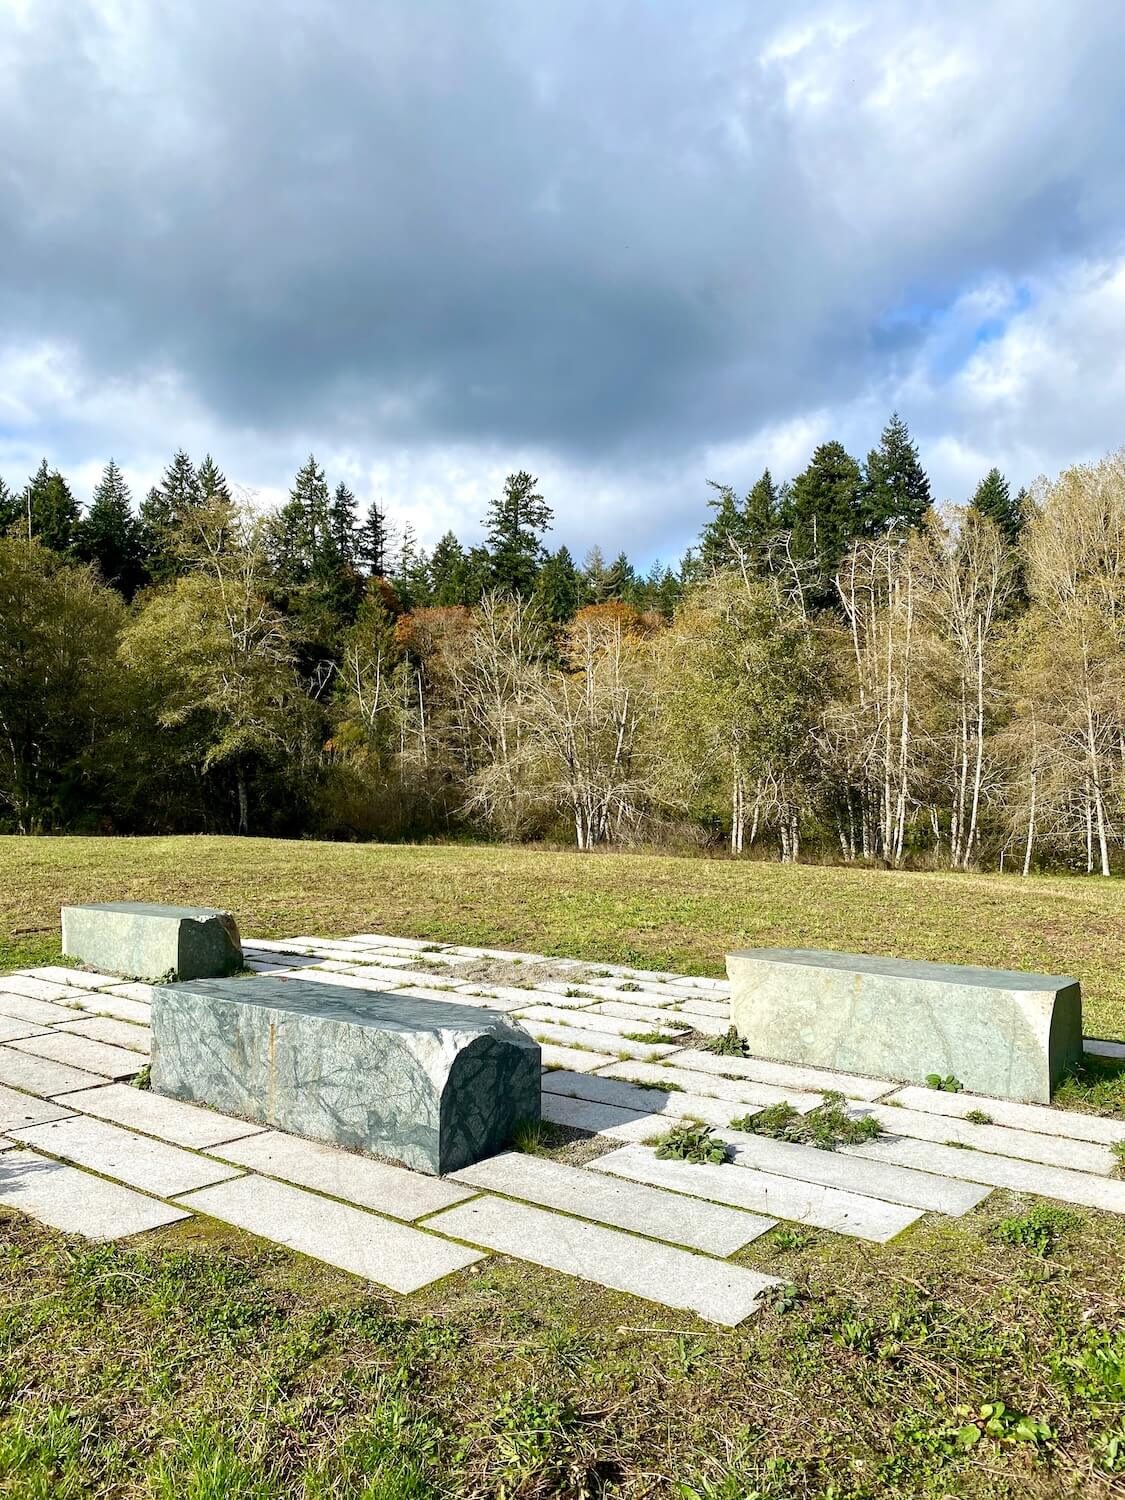 Three large granite blocks are assembled in the middle of a mowed grass field on a hillside in Bloedel Reserve. At the end of the field there are birch trees with changing leaves for fall season and a few evergreen trees behind them. The sky has an angry swirl of dark gray in amongst lighter colors of blue and white.